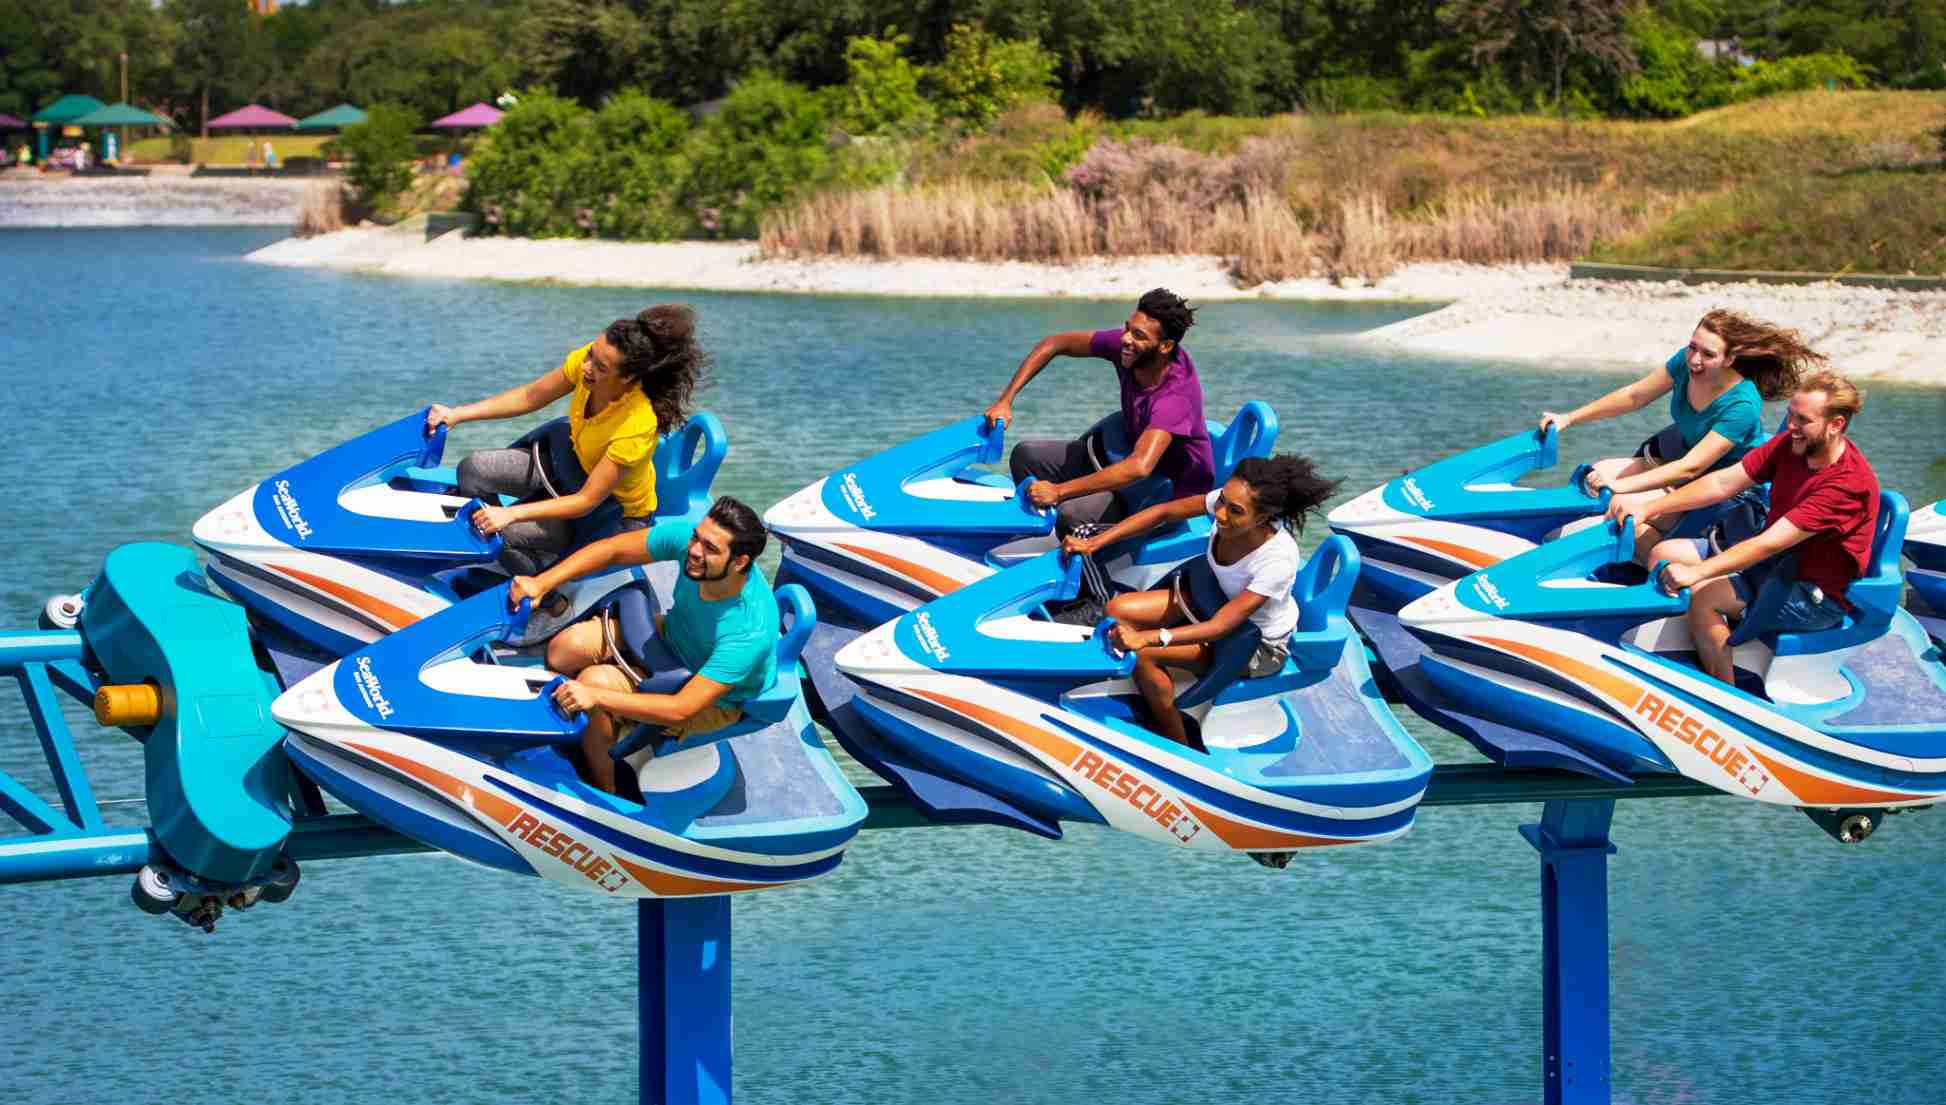 Intamin 'animal rescue' jet-ski coaster opens at SeaWorld San Antonio